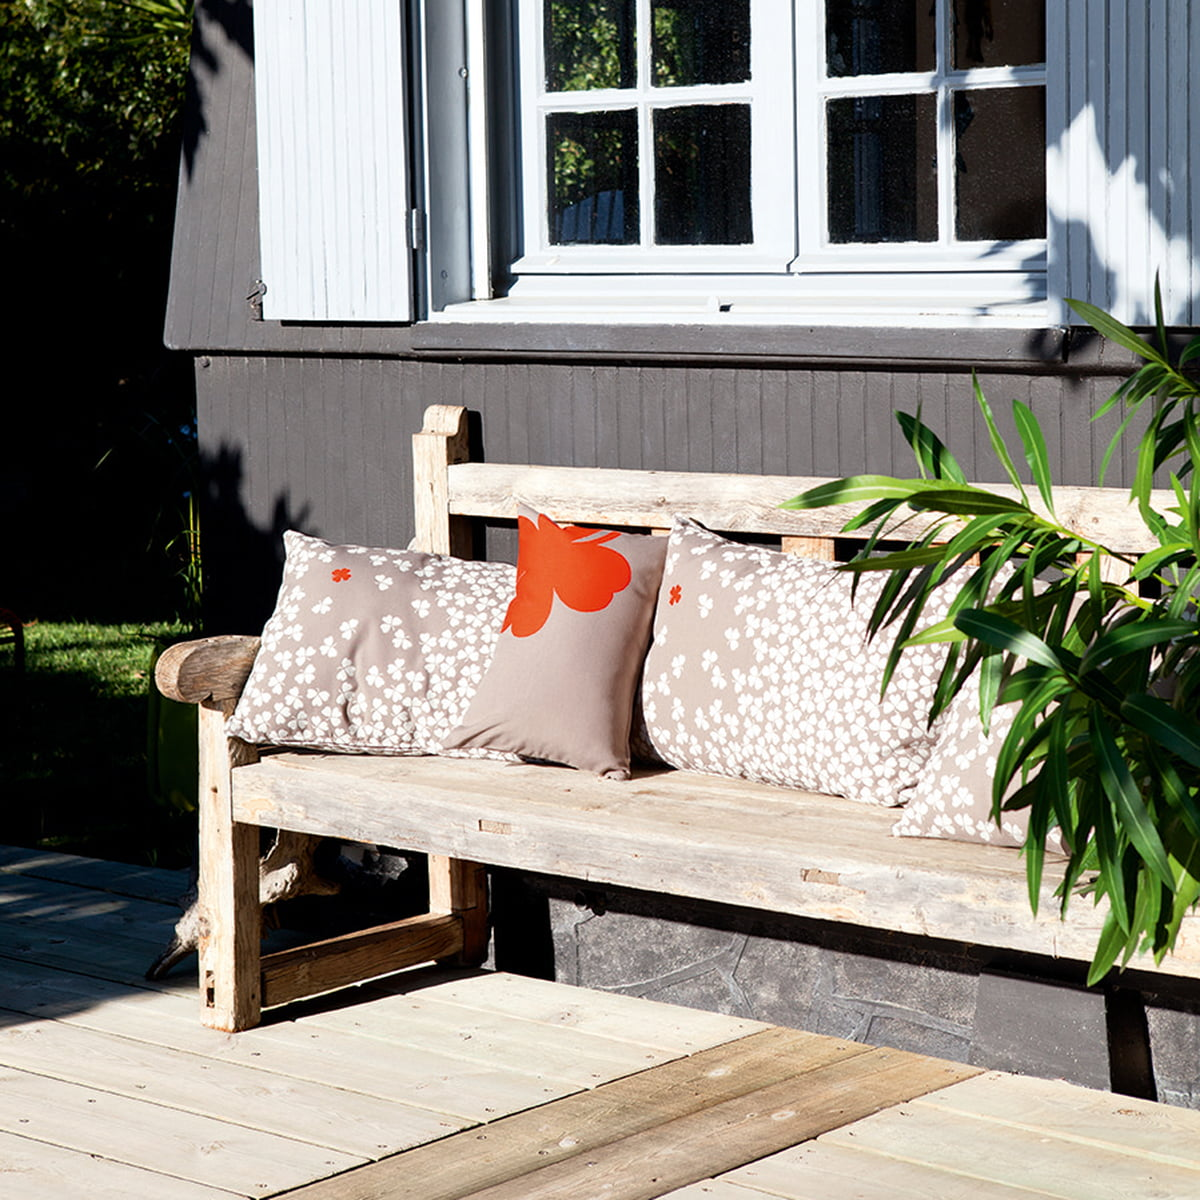 tr fle outdoor cushion 44 x 44 cm by fermob. Black Bedroom Furniture Sets. Home Design Ideas